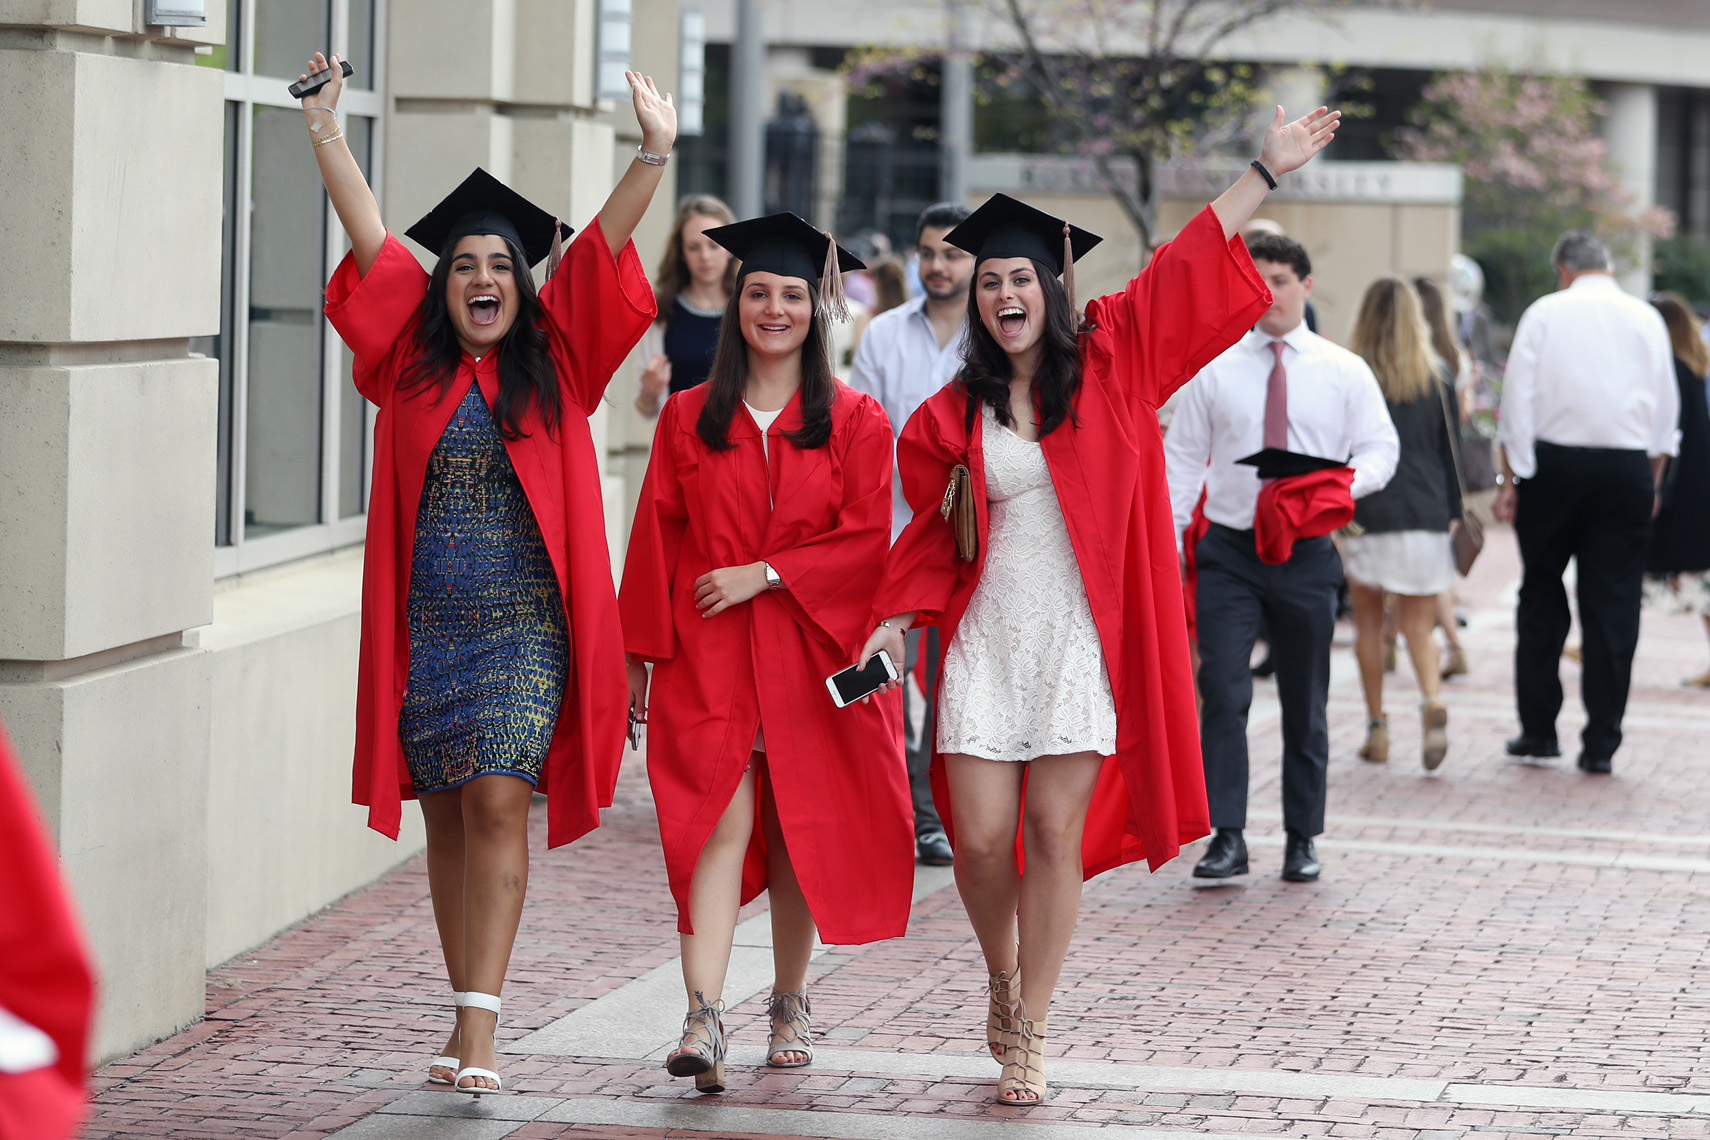 Graduates arrive for Boston University Commencement Services in Agannis Arena